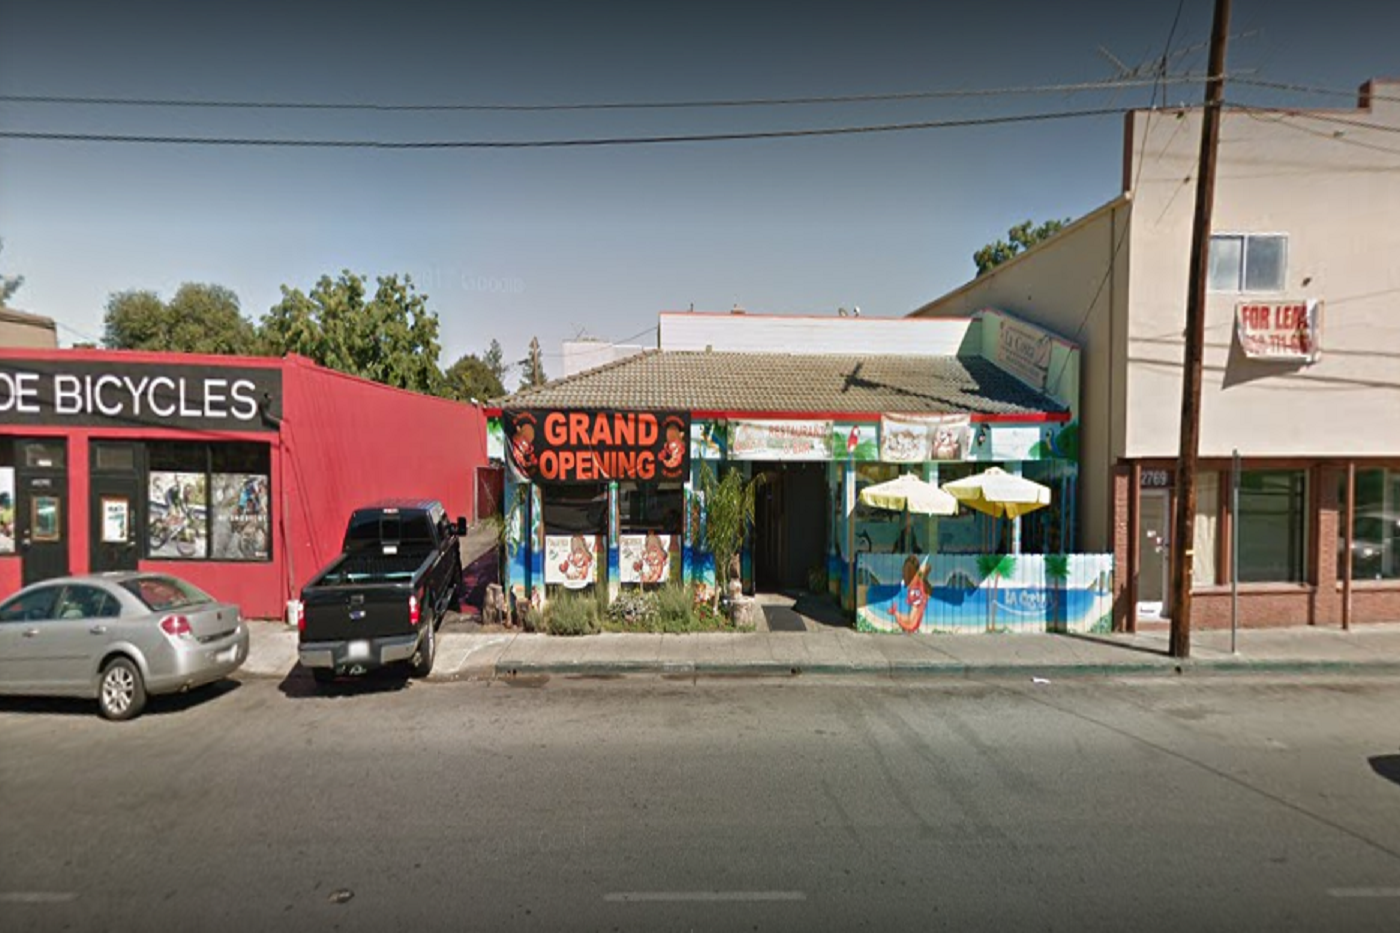 The La Costa, 2761 El Camino Real, Redwood City, CA 94061 was cited for refilling Liquor Bottles